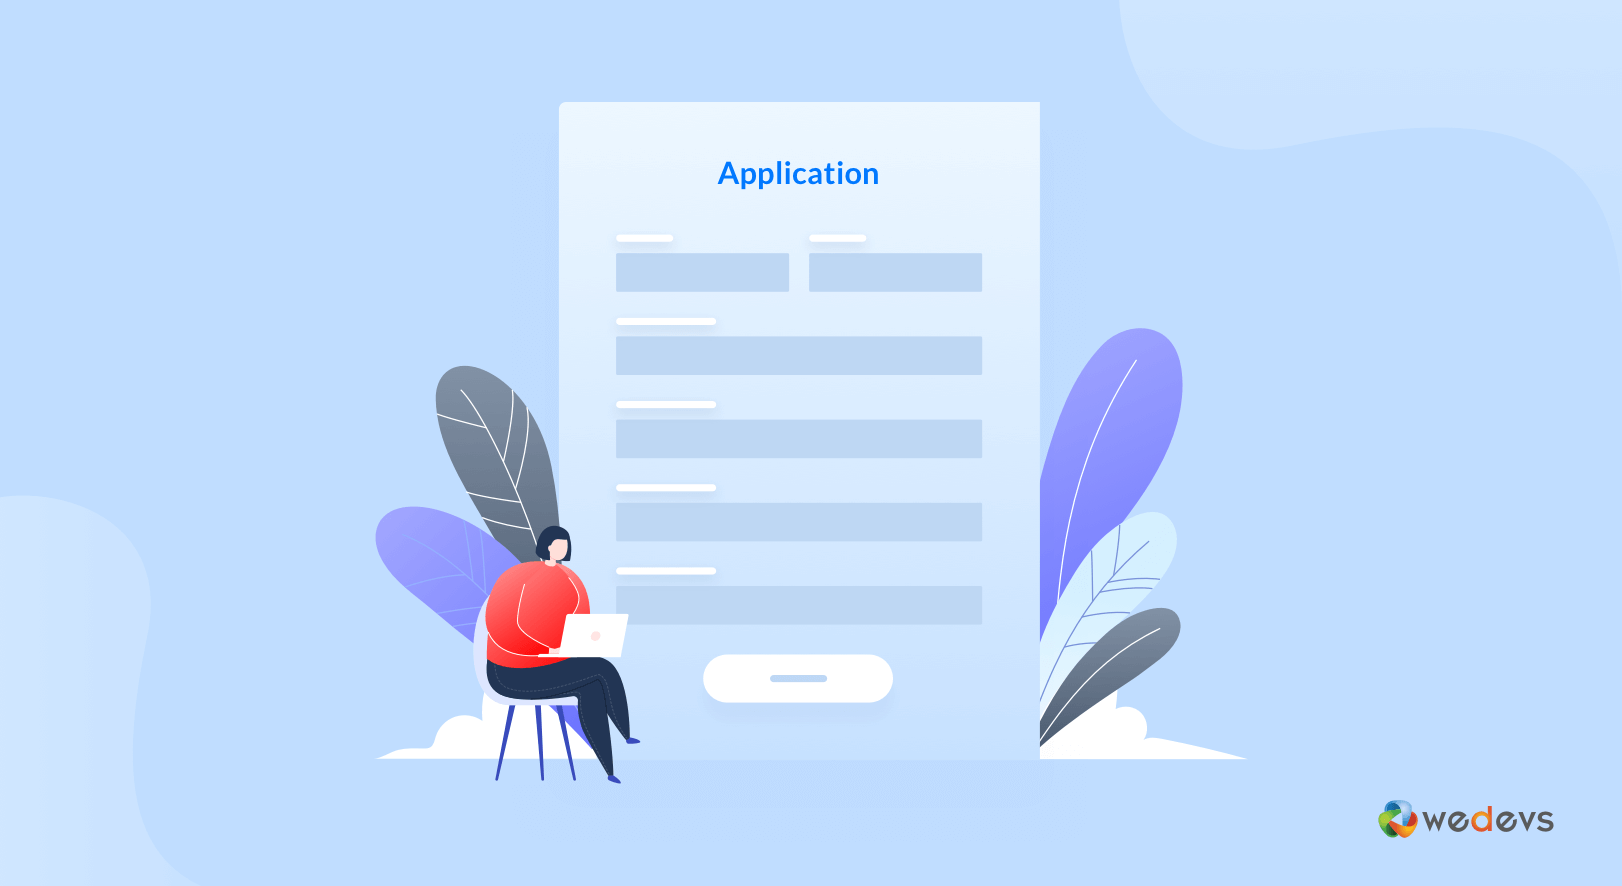 How to Create a Job Application Form in WordPress